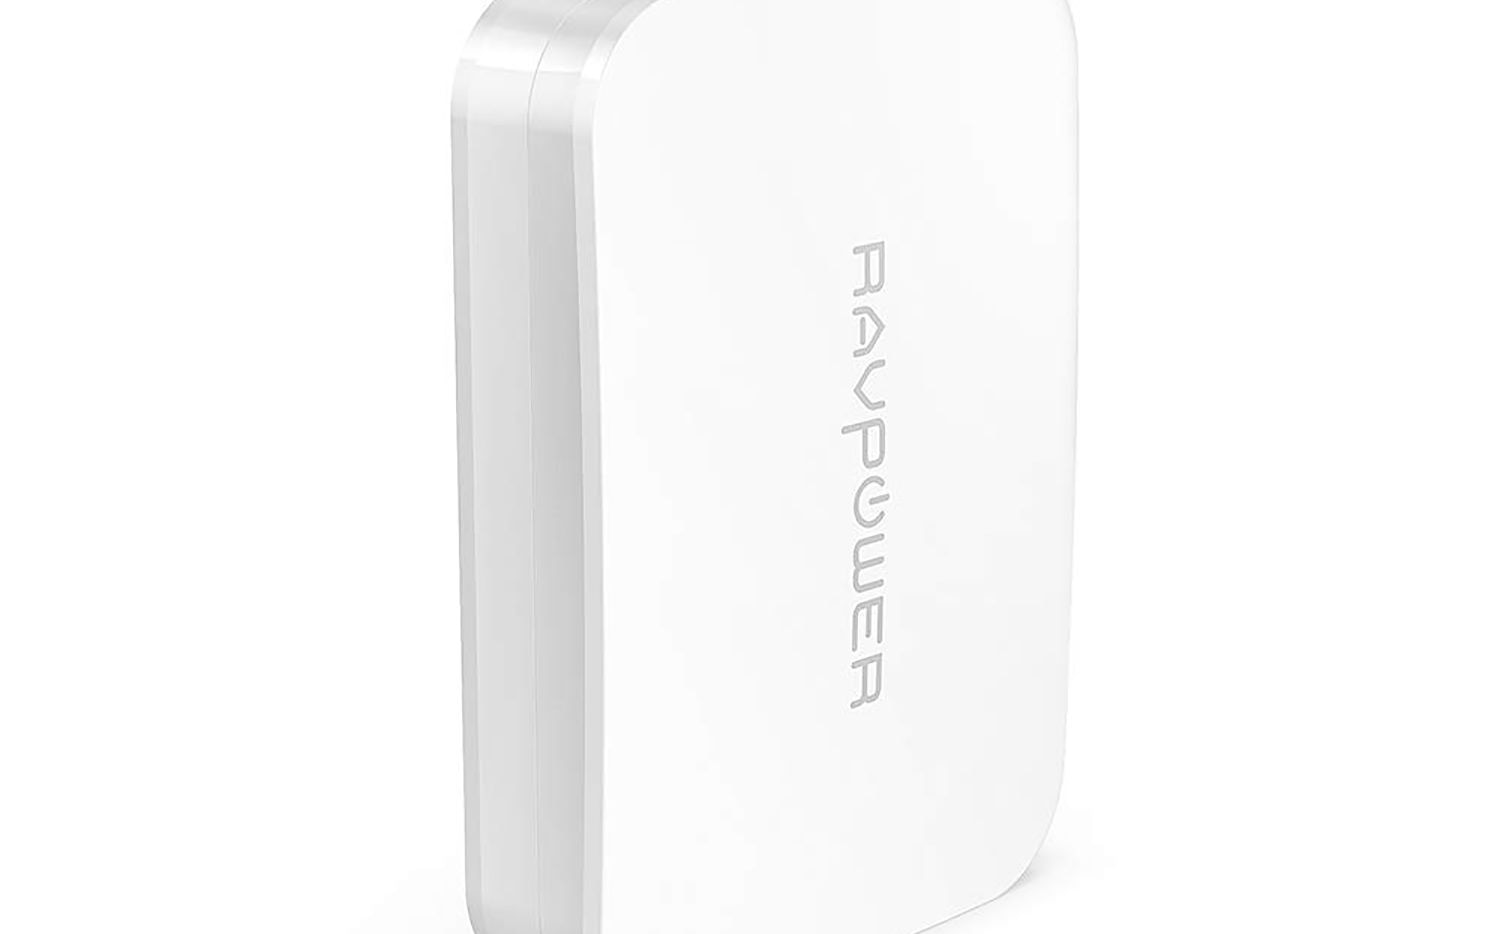 Ravpower 45-watt Ultrathin PD USB-C Charger